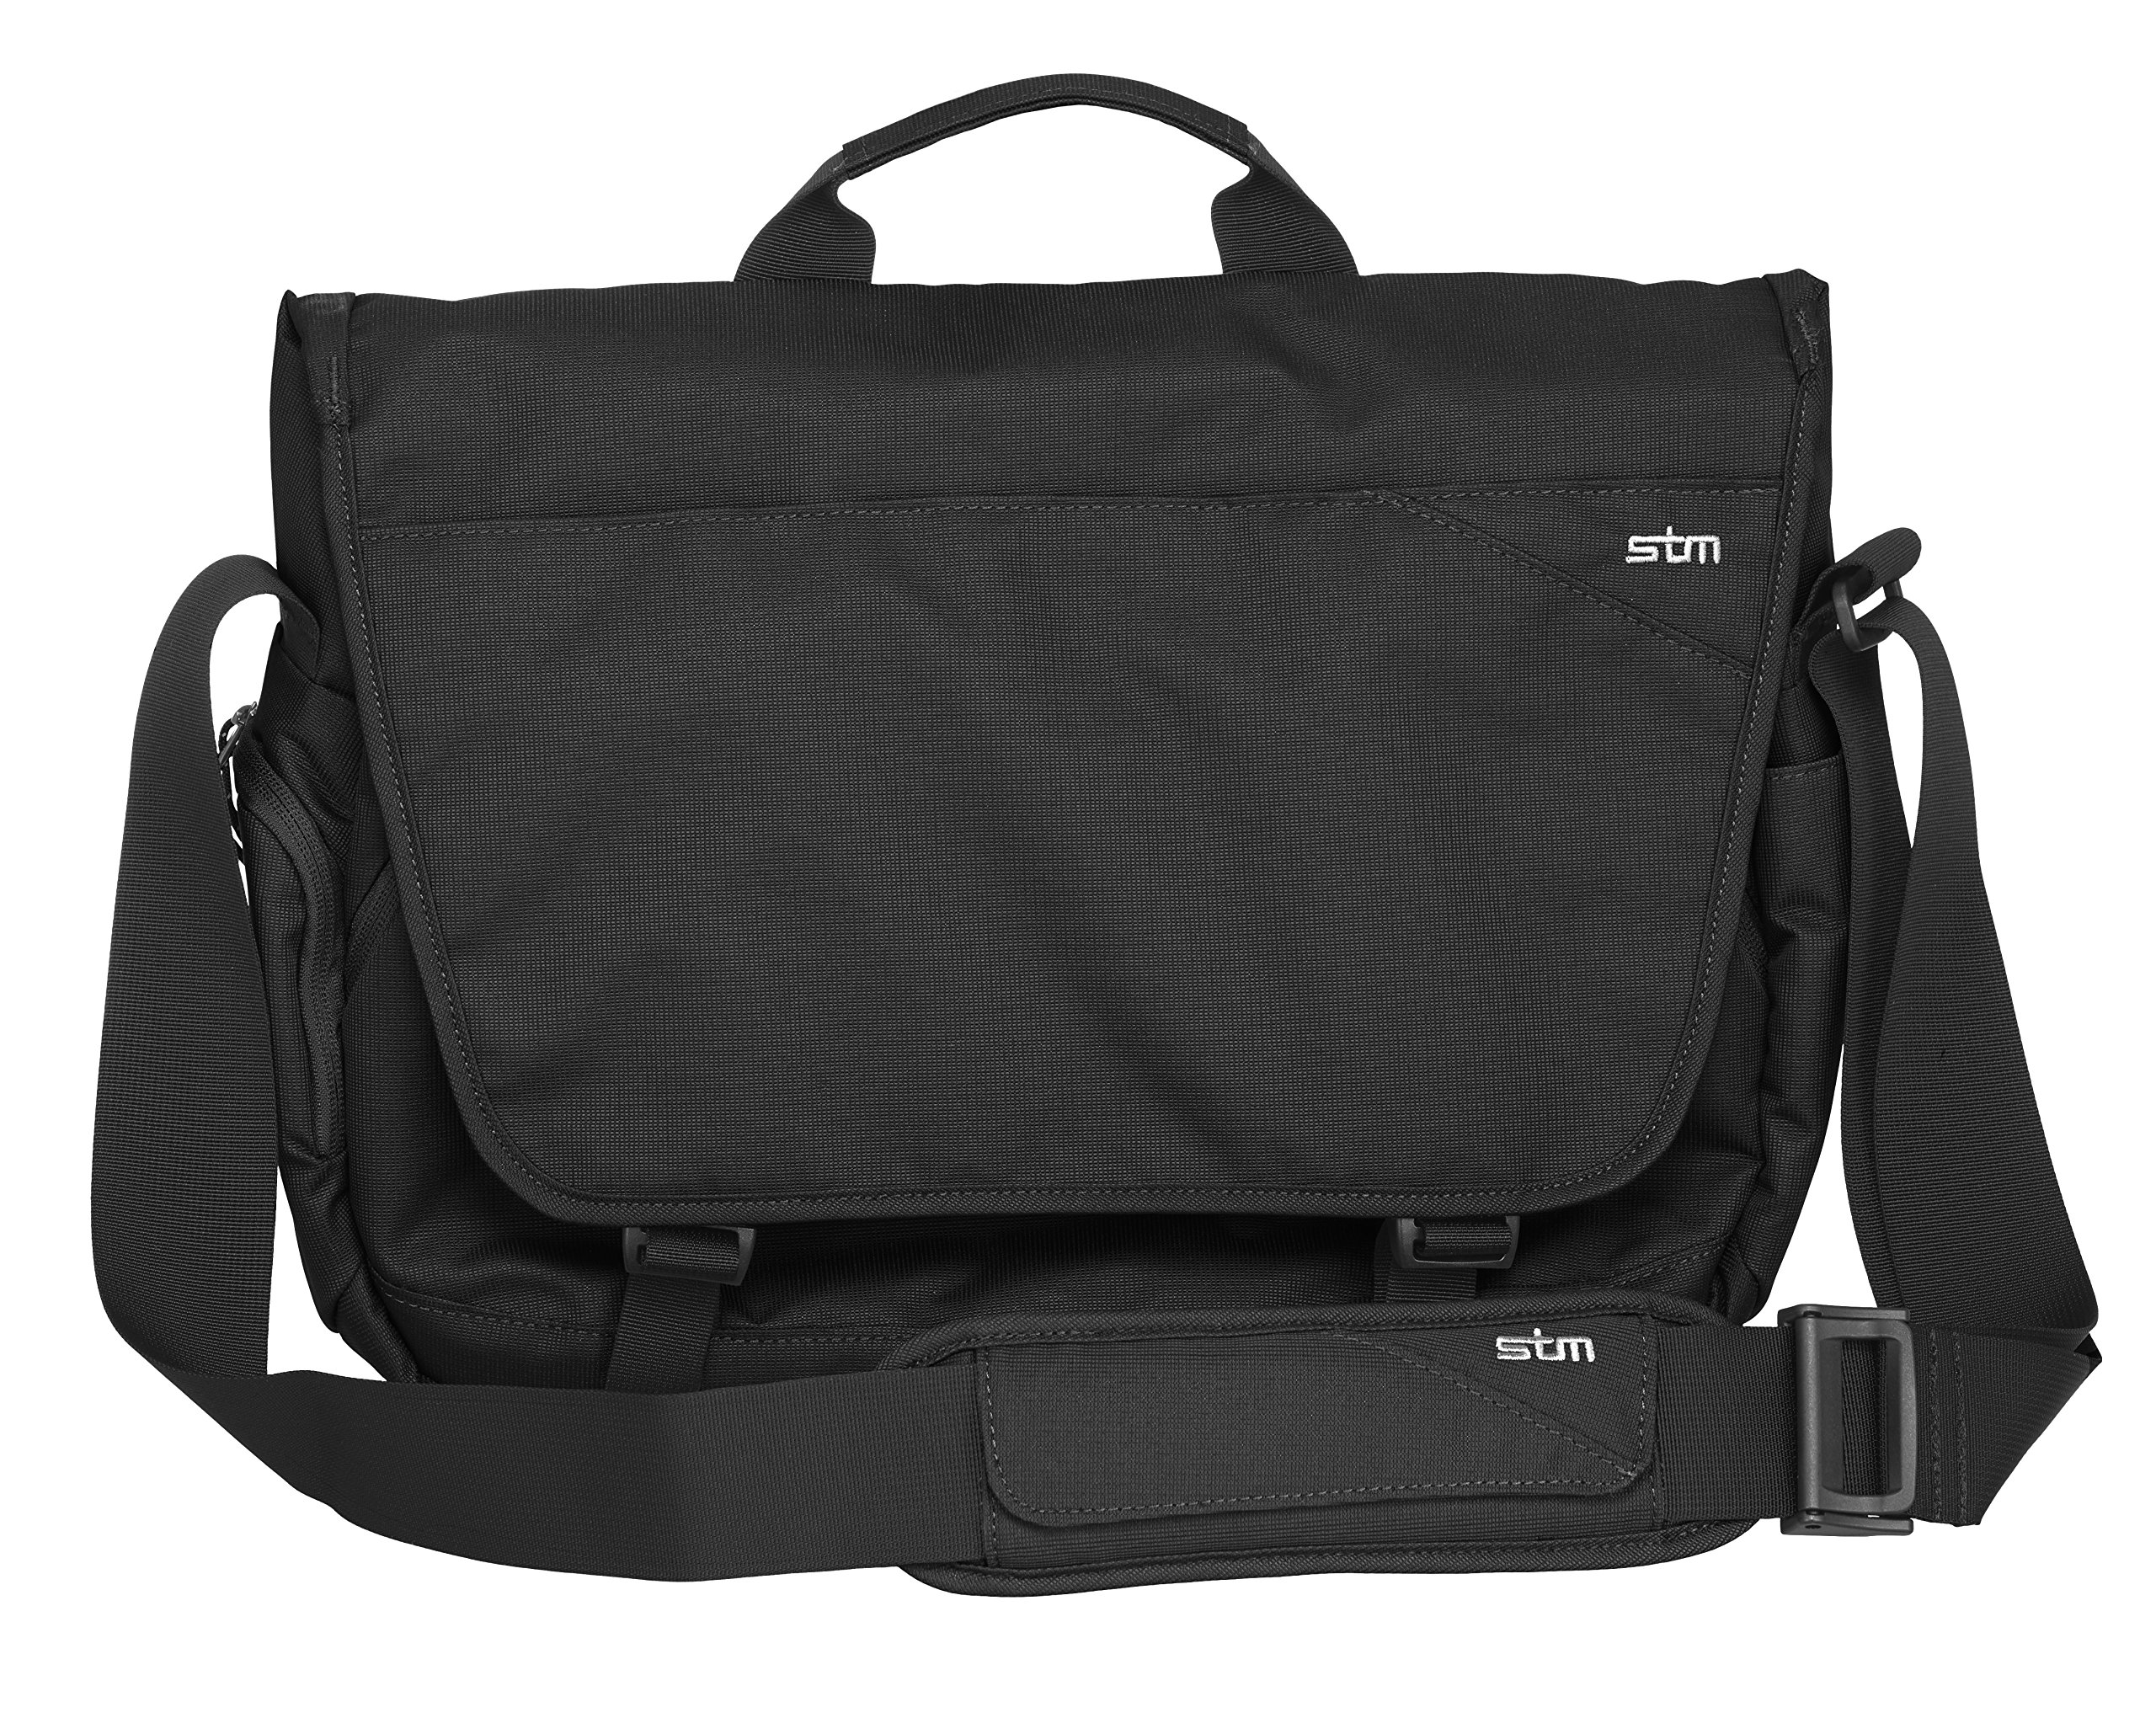 STM Radial Messenger Bag for 15'' Laptop & Tablet - Black (stm-112-117P-01)